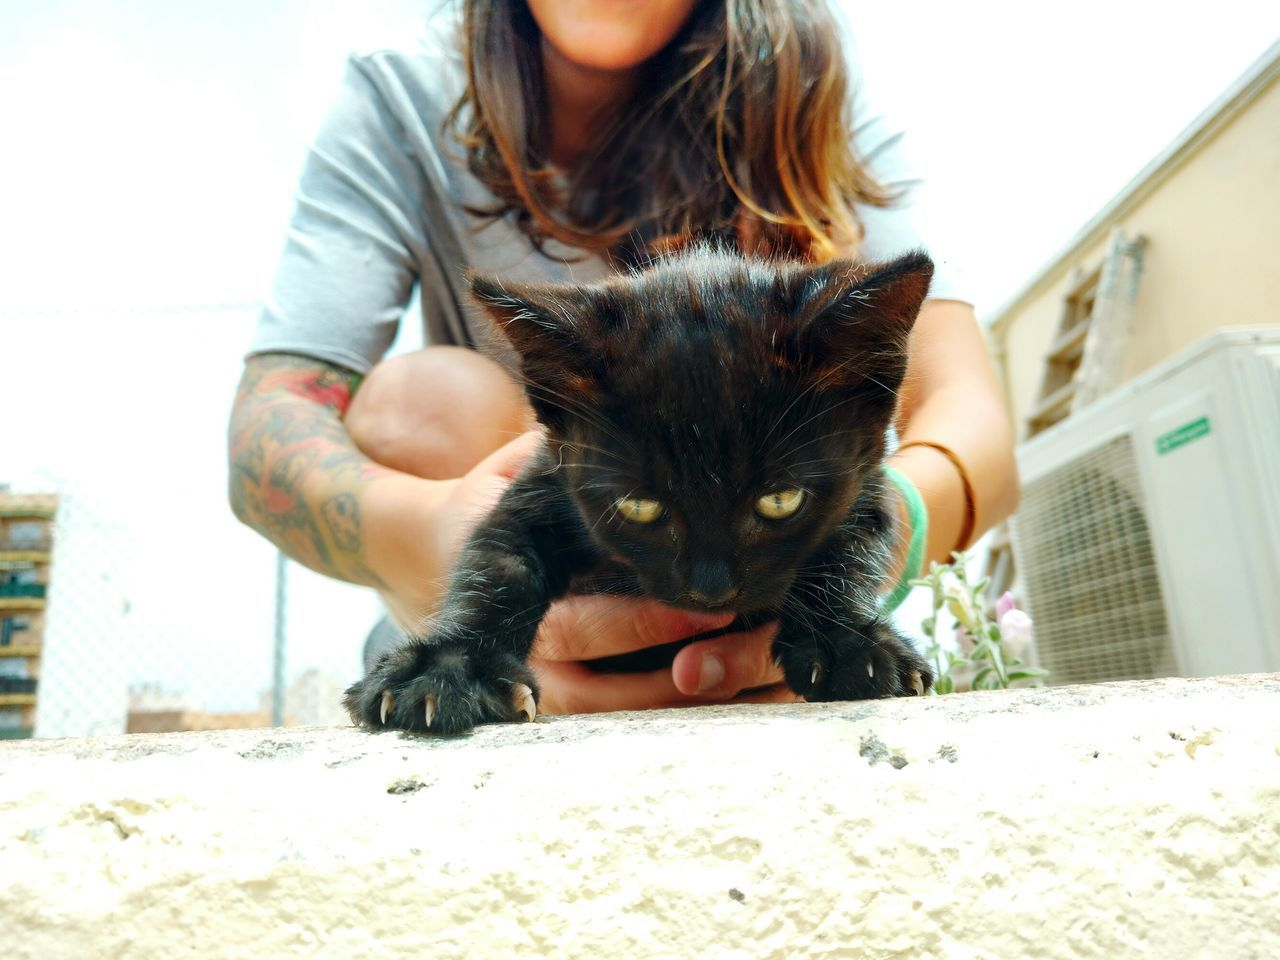 Surface Level View Of Woman Holding Black Kitten On Footpath